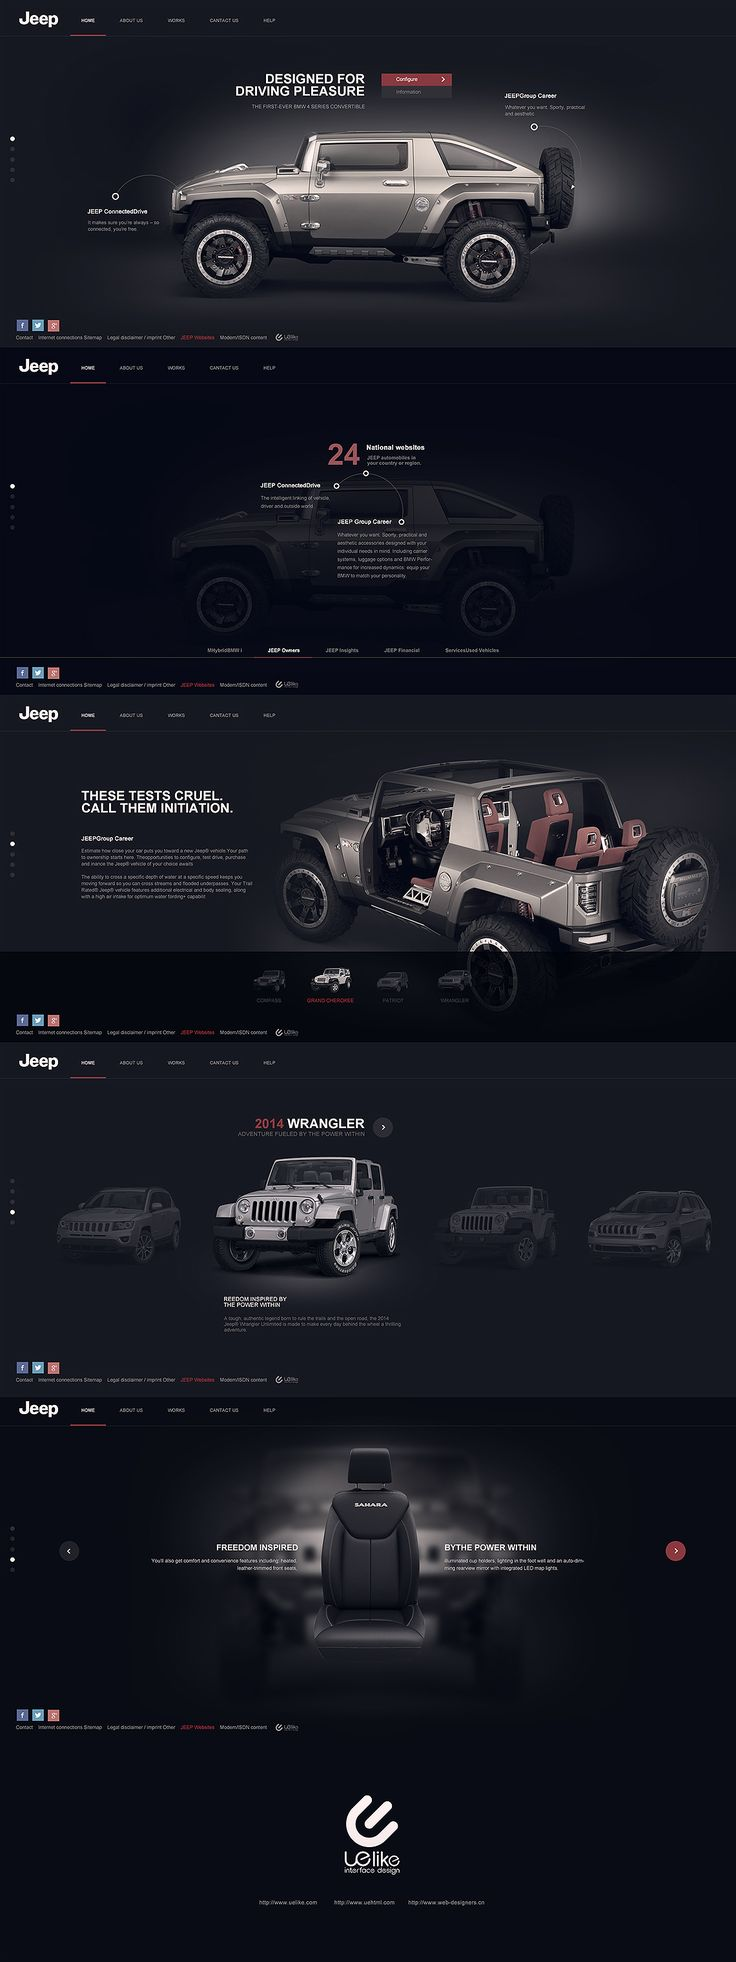 #creative #website #webdesign #design #web #internet #site #webdesigner #designer #layout #template #theme #pikock www.pikock.com #ui #ux / dark website / dark design